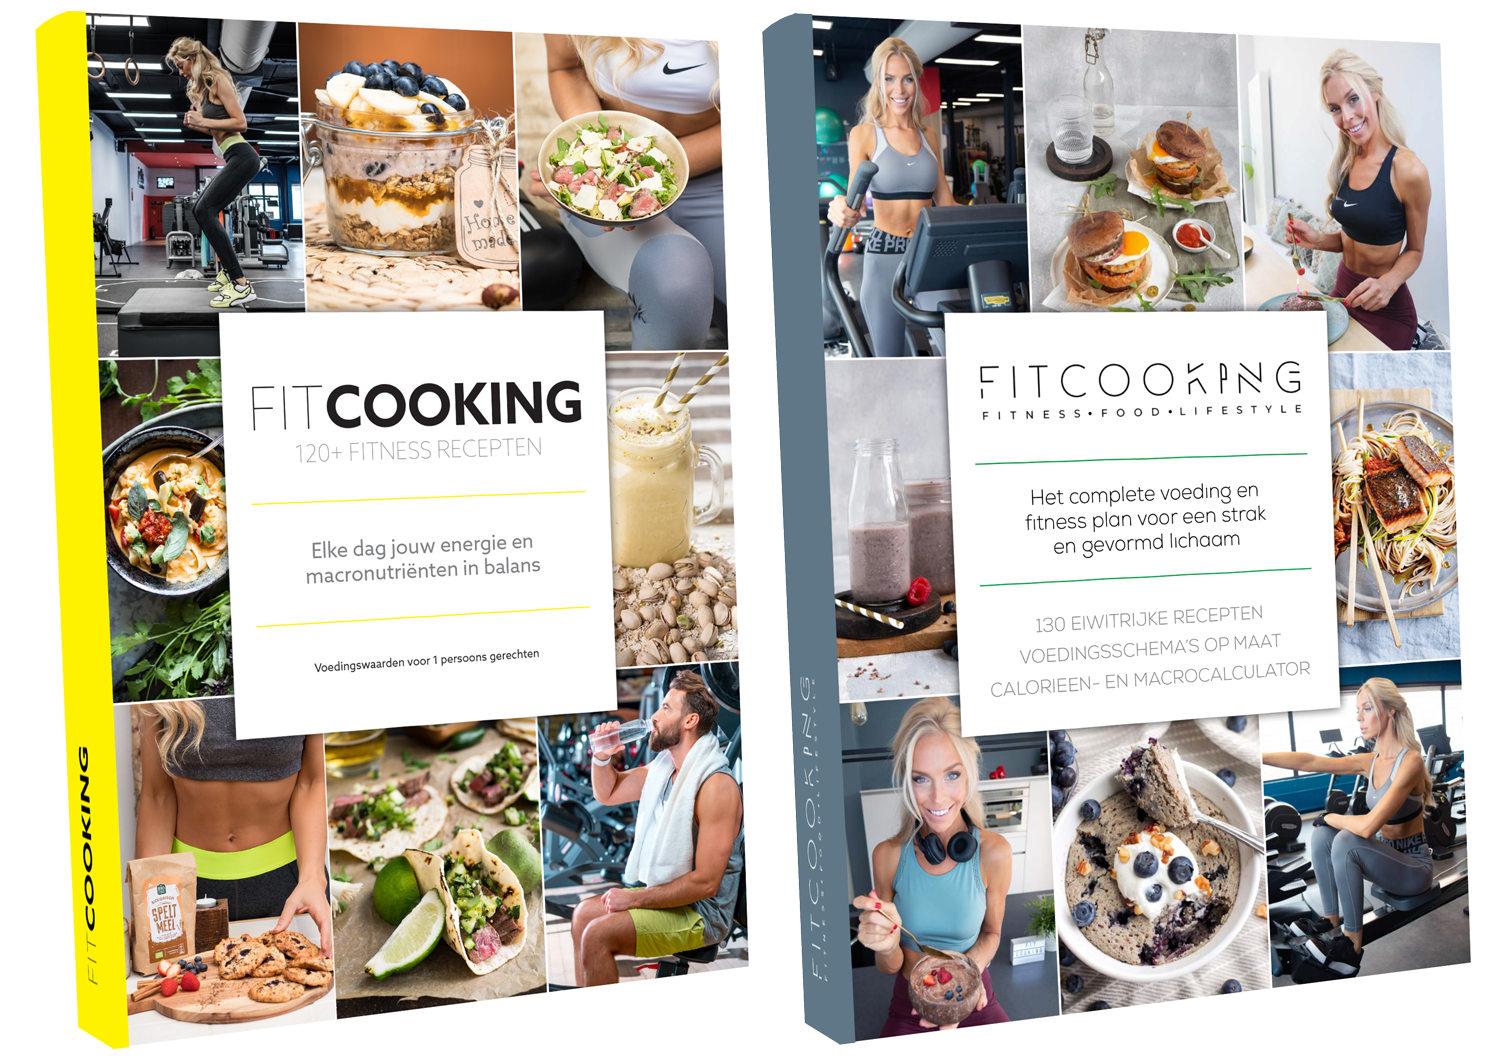 fitcooking-editie-1-2